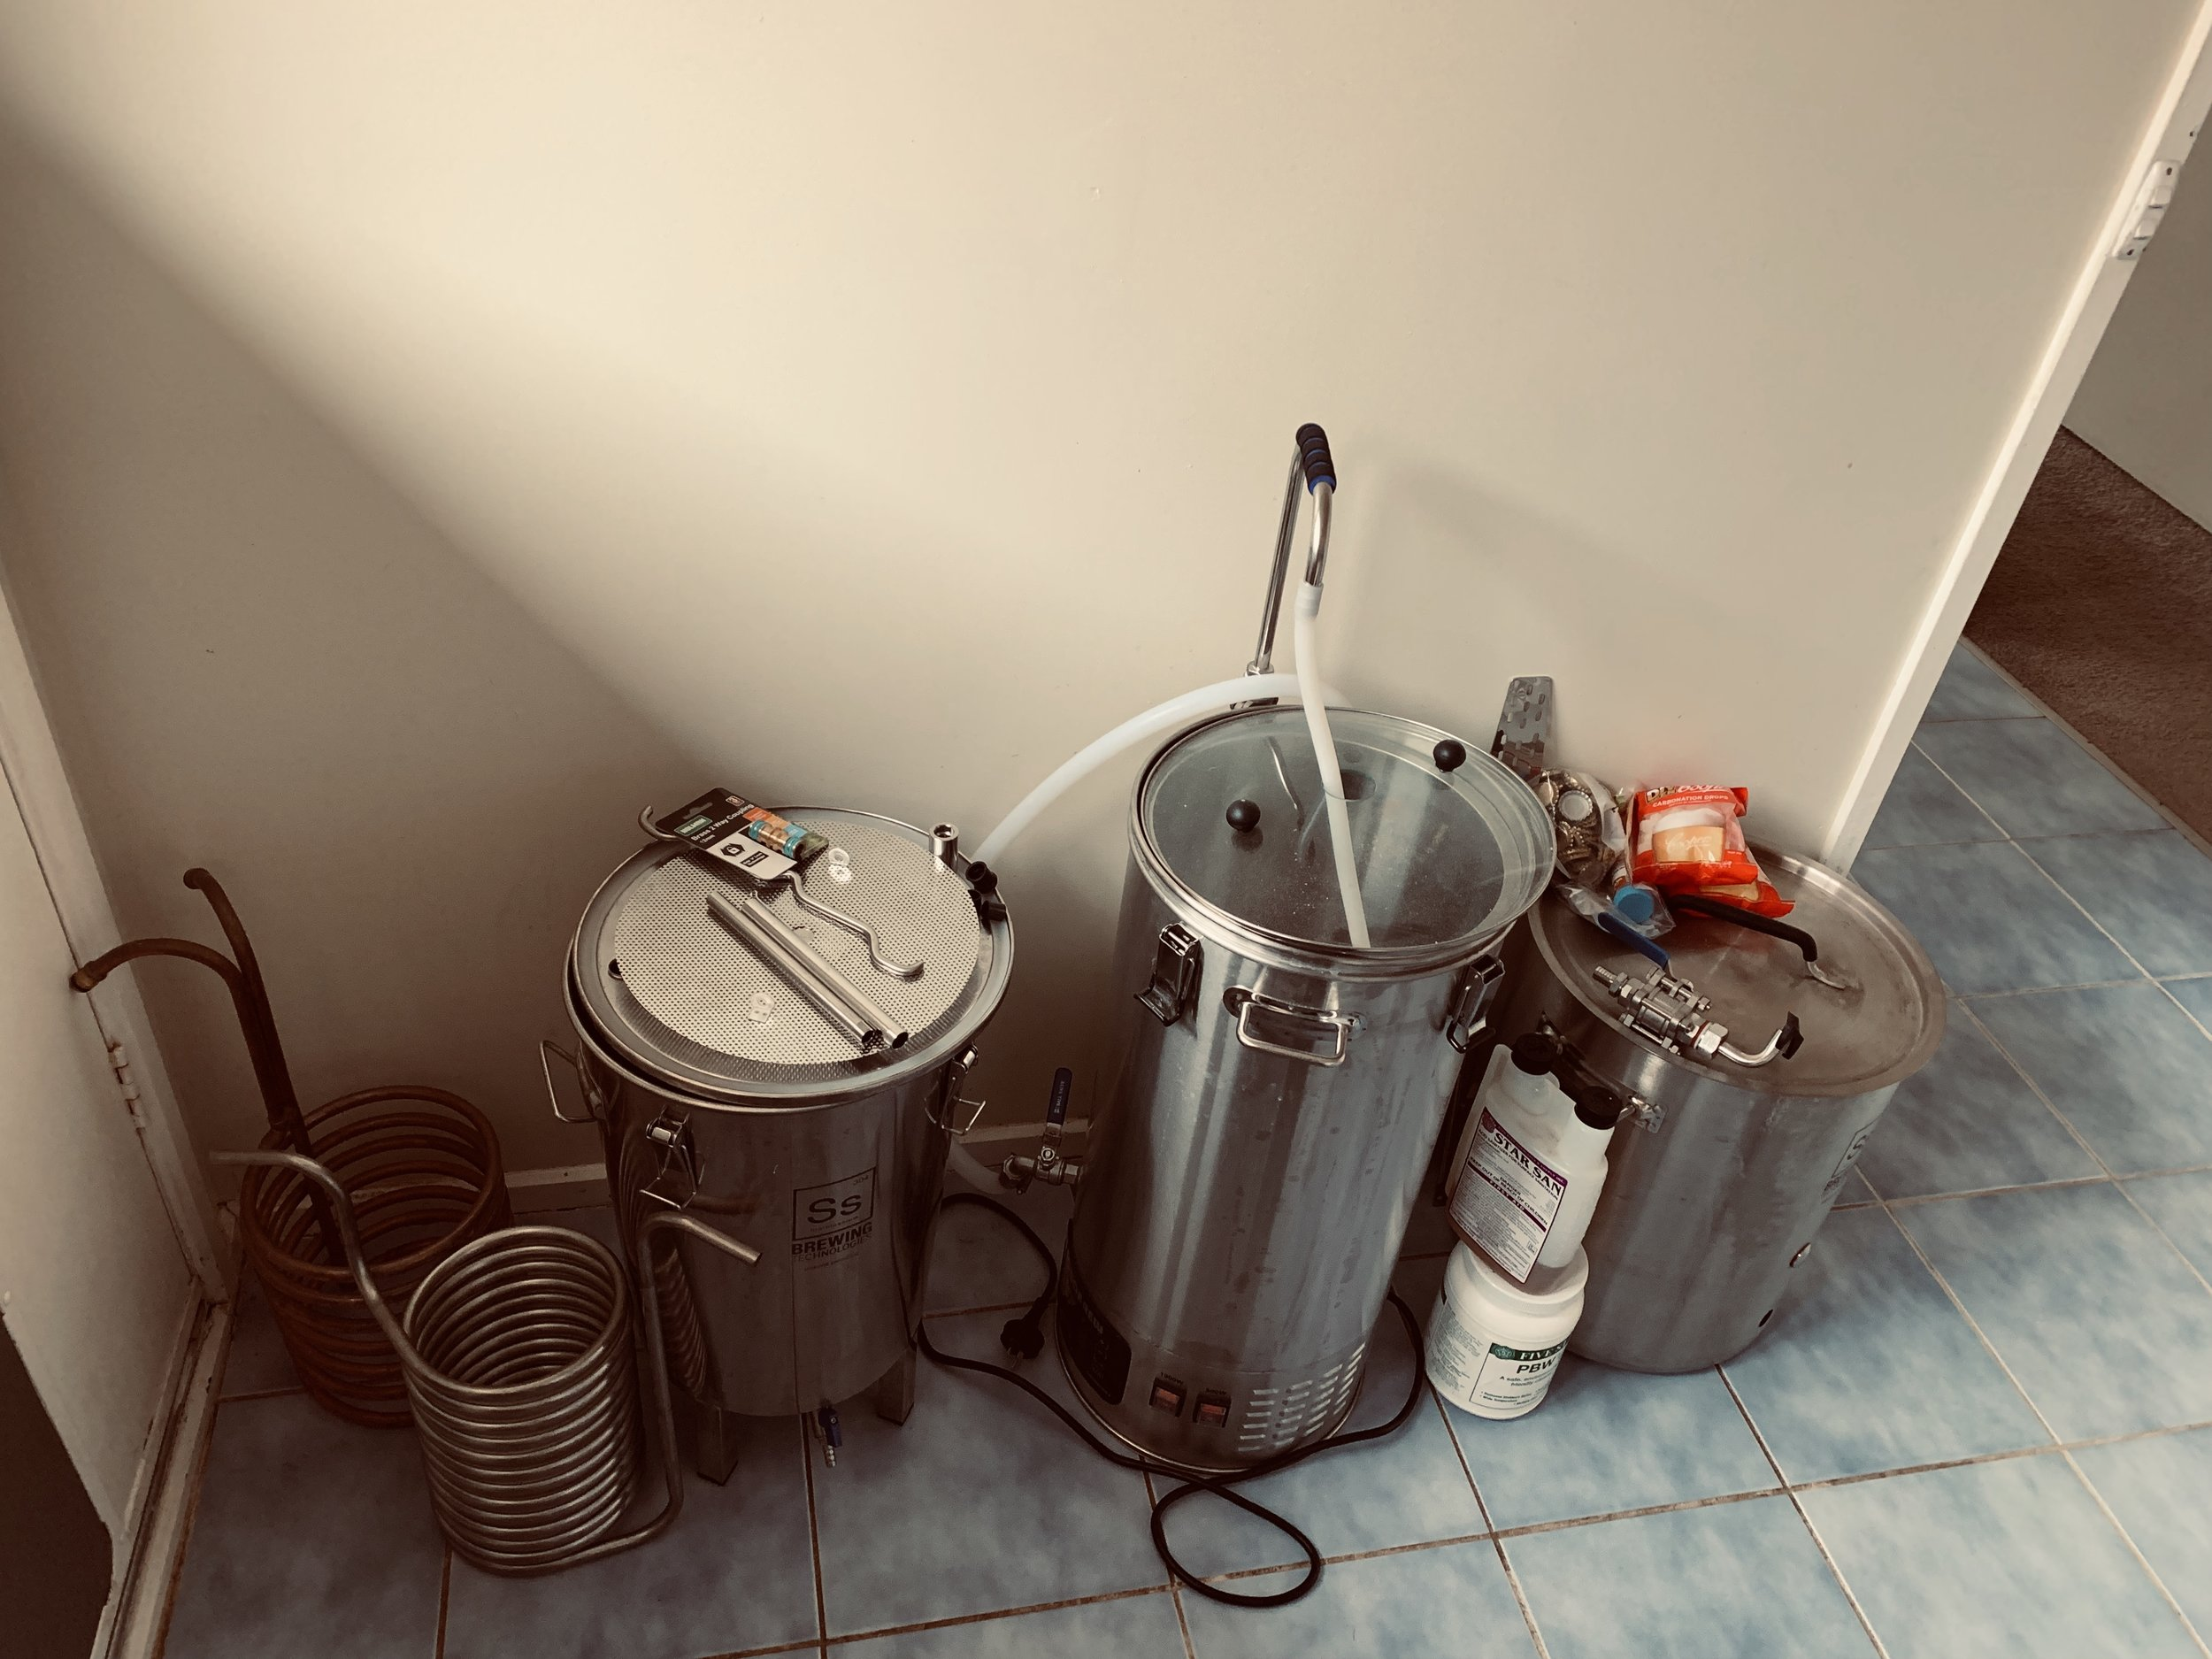 Brewing equipment - Including Robobrew and SS BrewTech Fermenter